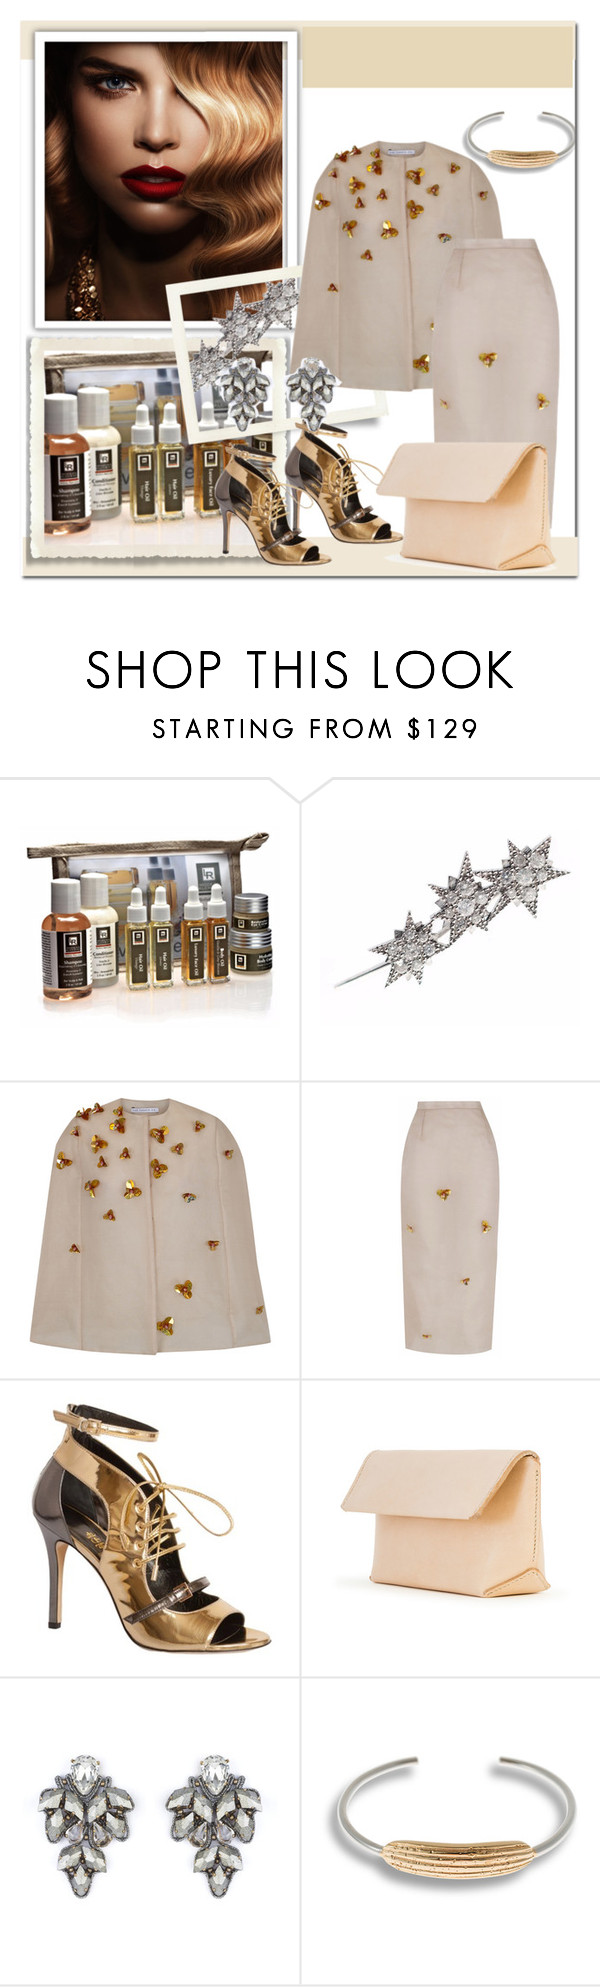 """""""Runway2street"""" by runway2street ❤ liked on Polyvore featuring mode, LR Modern Alchemy, The 2nd Skin Co., De Siena, Iala Díez, Tataborello et Hissia"""